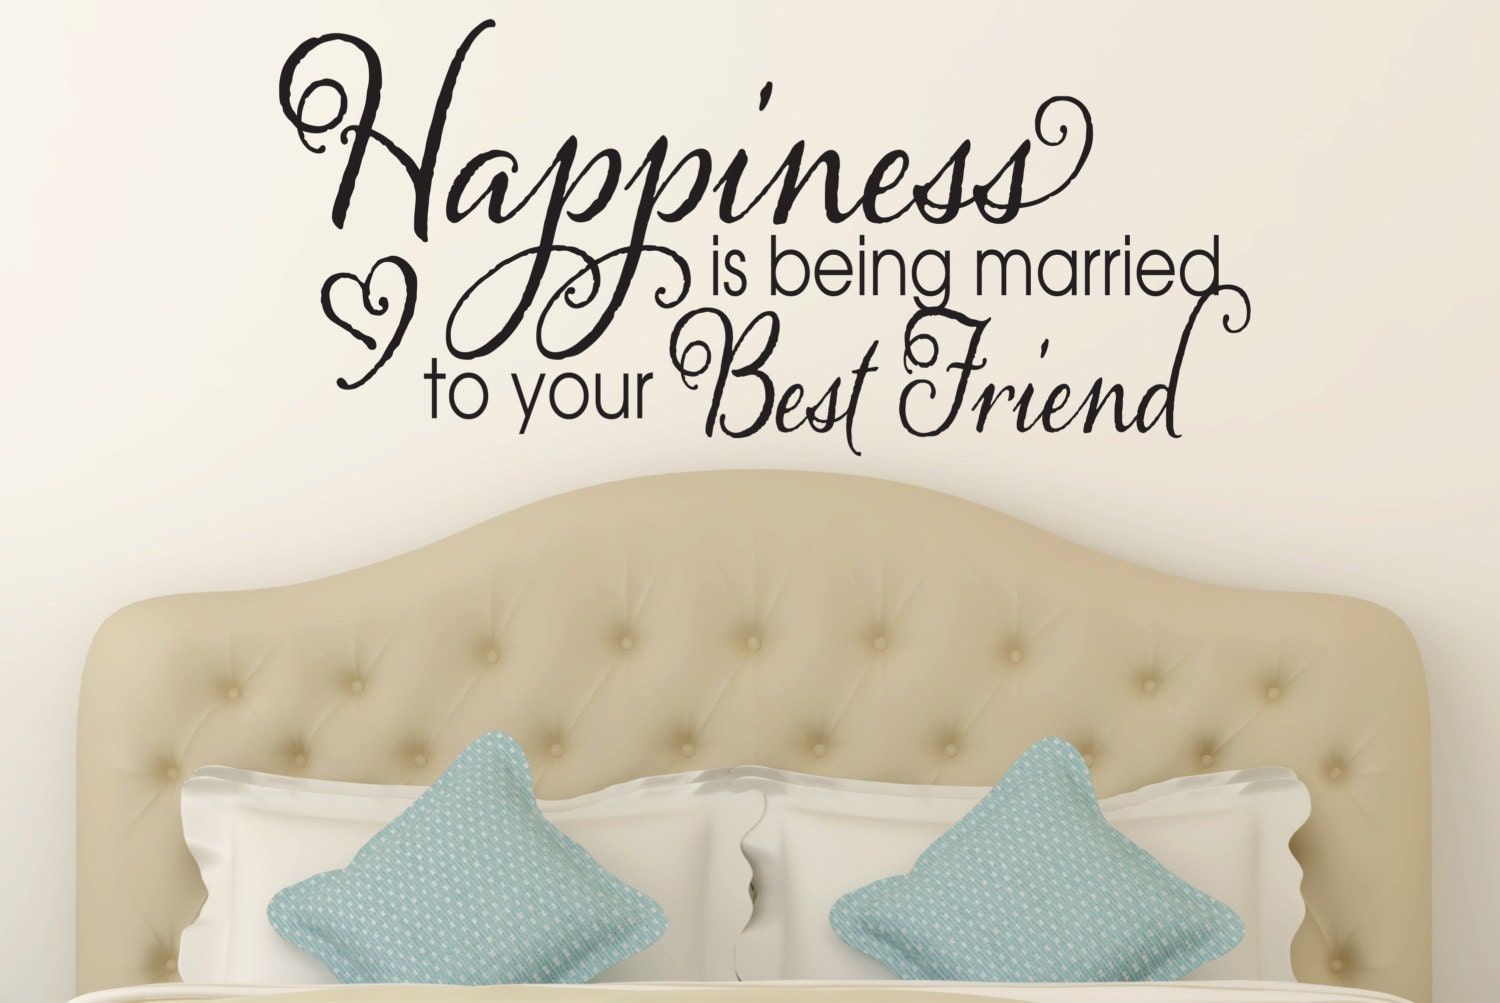 Happiness is Being Married to Your Best Friend Wall Decal by Davis VinylDesignsDavisVinylDesigns